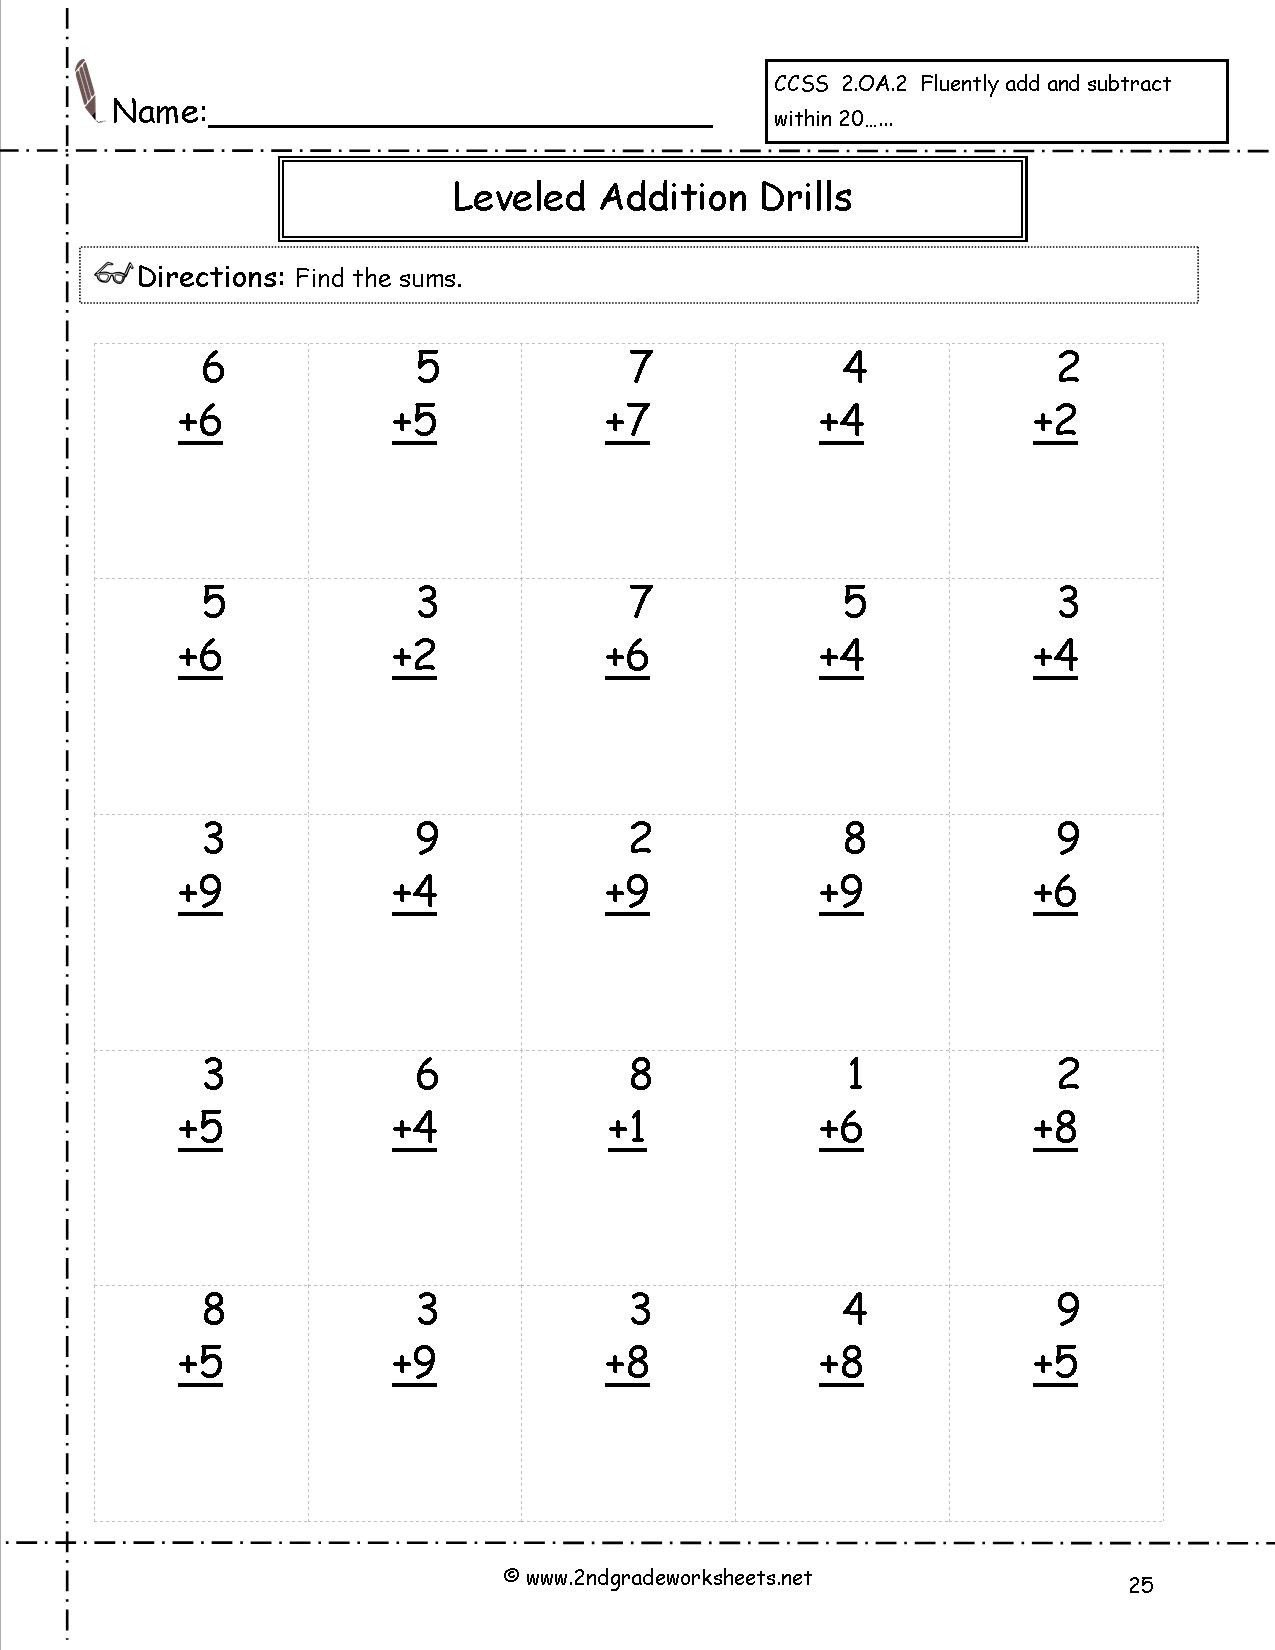 free math worksheets second grade 2 multiplication multiplication table 2 3 of free math worksheets second grade 2 multiplication multiplication table 2 3 3